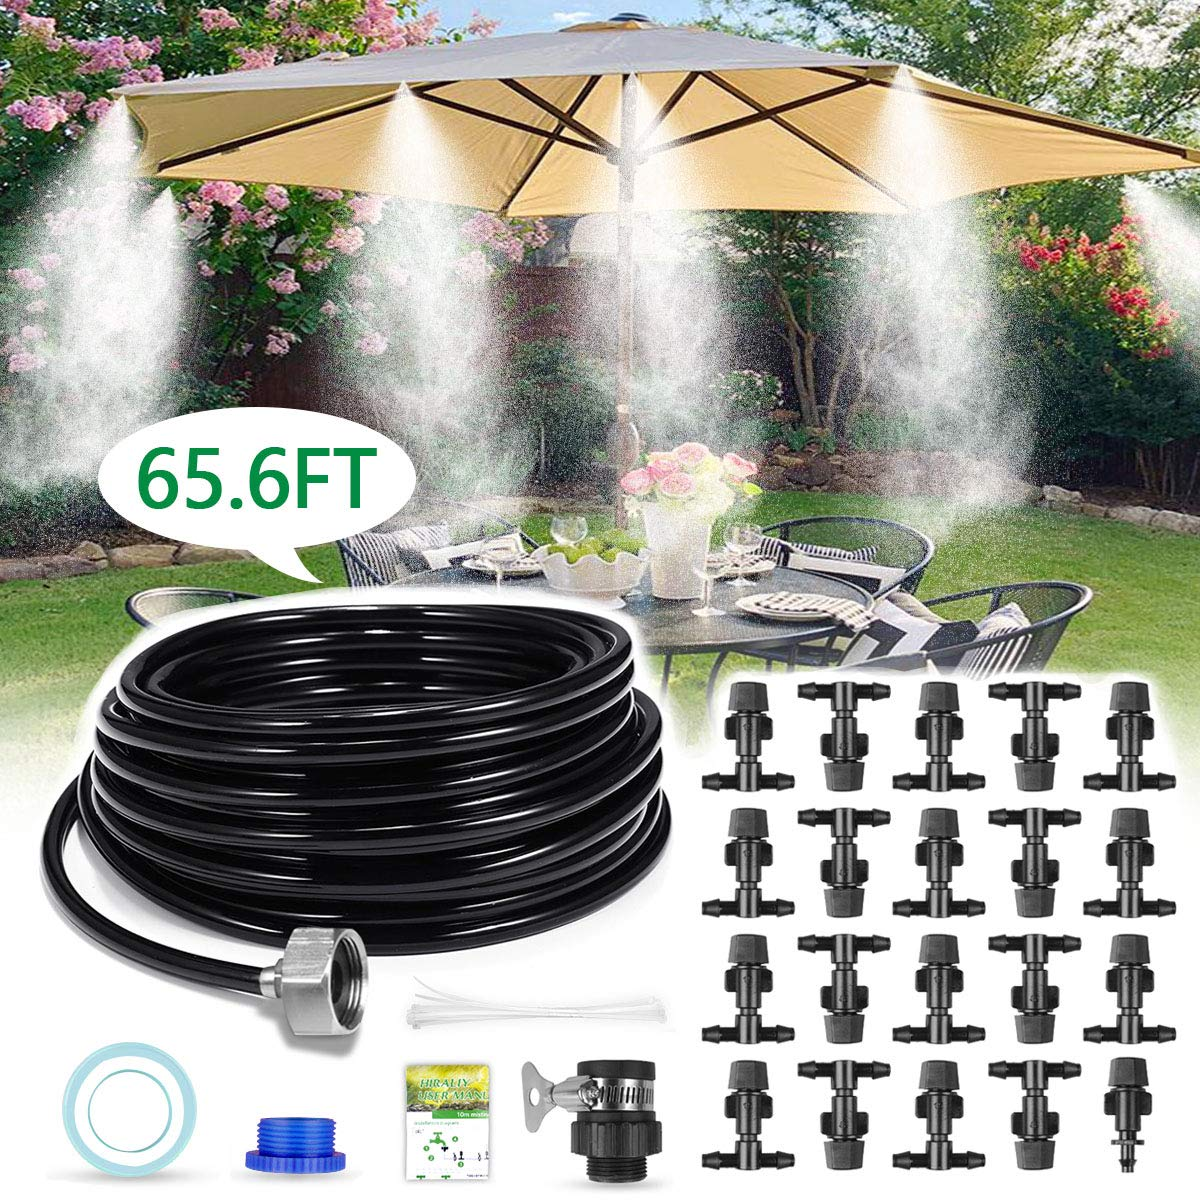 HIRALIY Mist Cooling System Outdoor Misting System 65.6FT (20M) Misting Line 20 Mist Nozzles 3/4'' Metal Threaded Adapter Misters for Patio Garden Greenhouse Umbrellas Trampoline